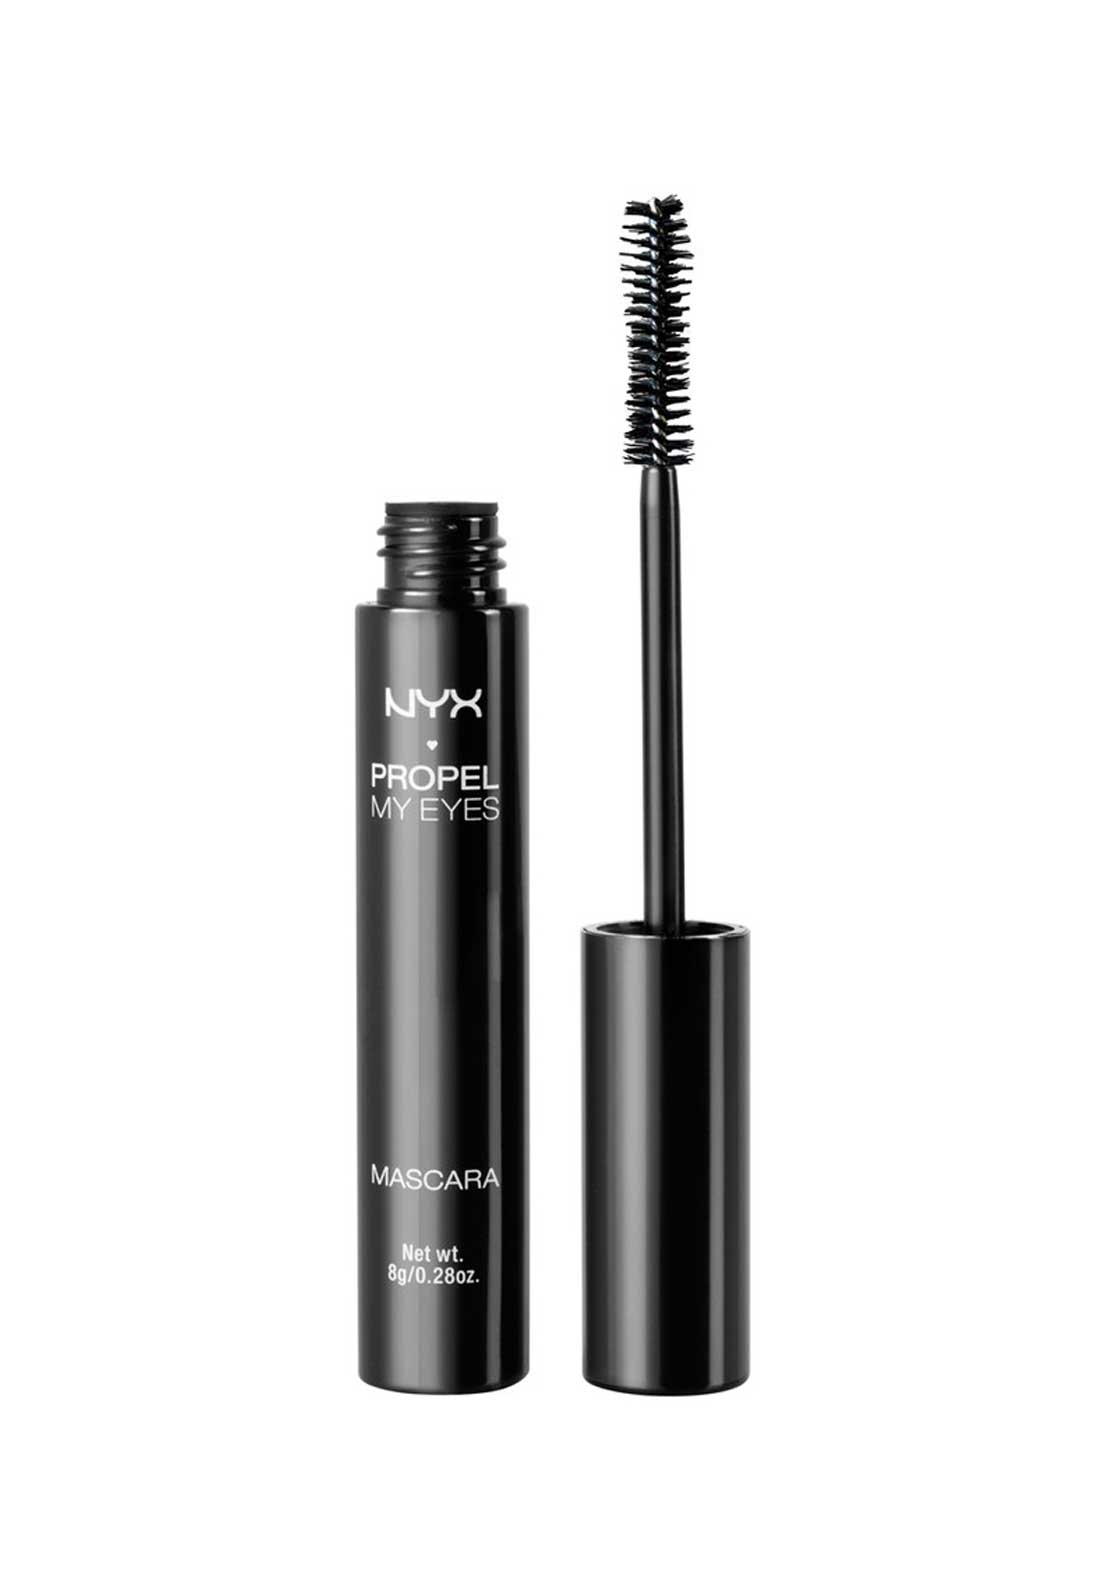 NYX Make Up Propel My Eyes Mascara, Jet Black